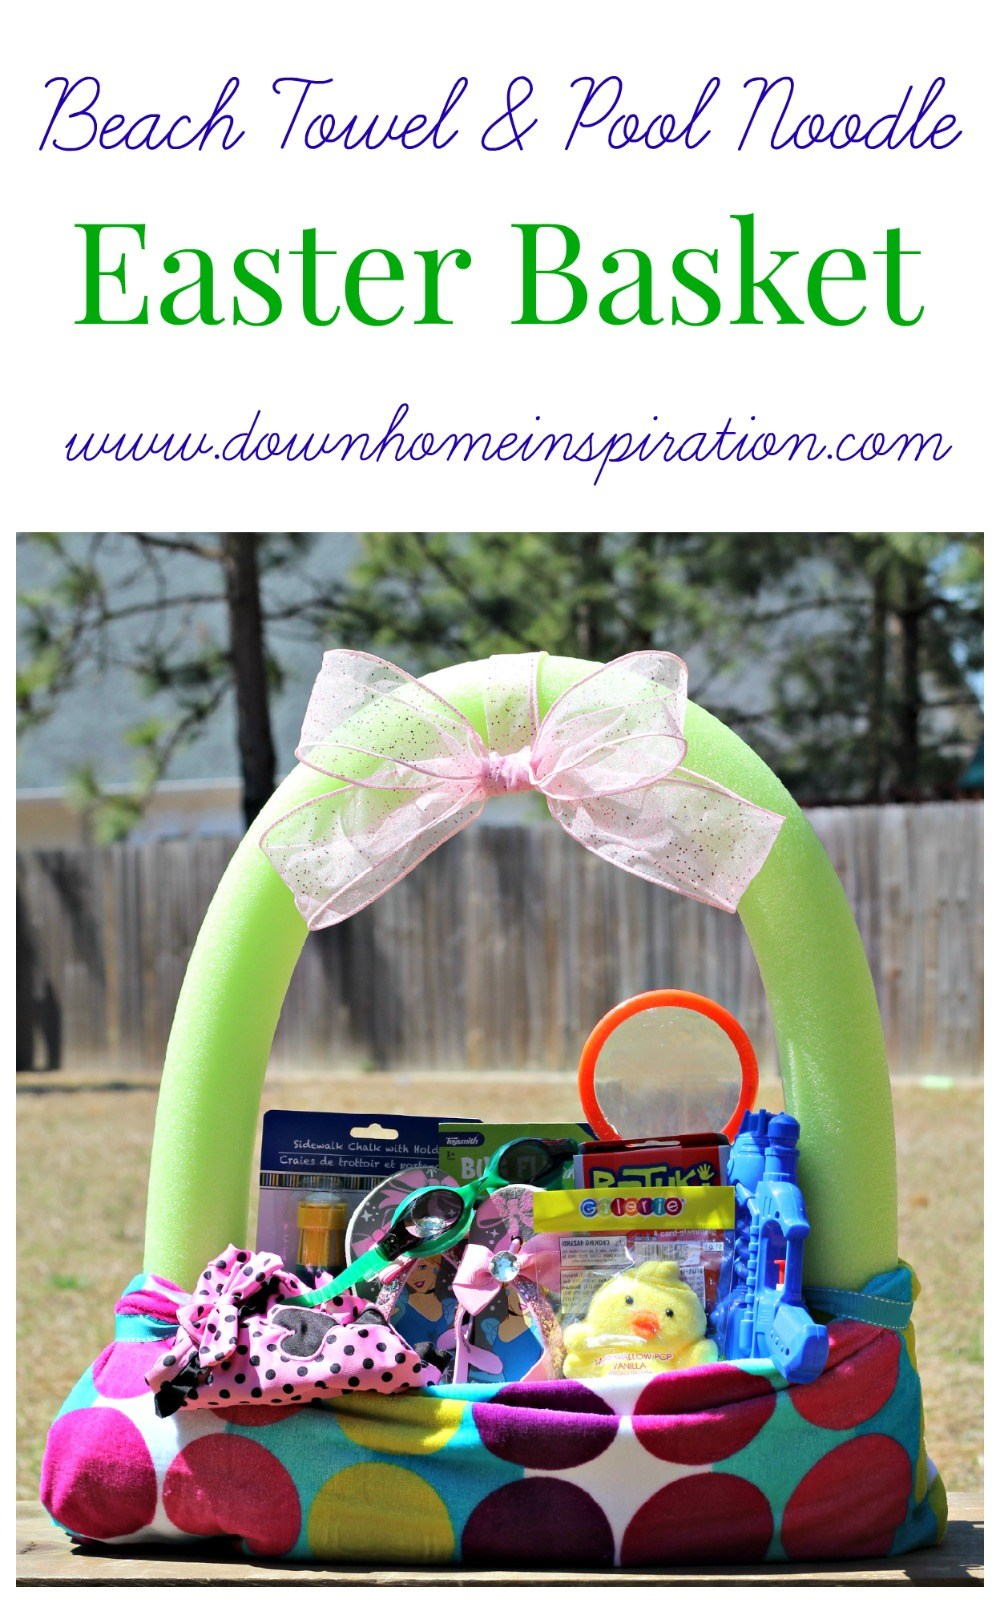 25 Great Easter Basket Ideas - Crazy Little Projects